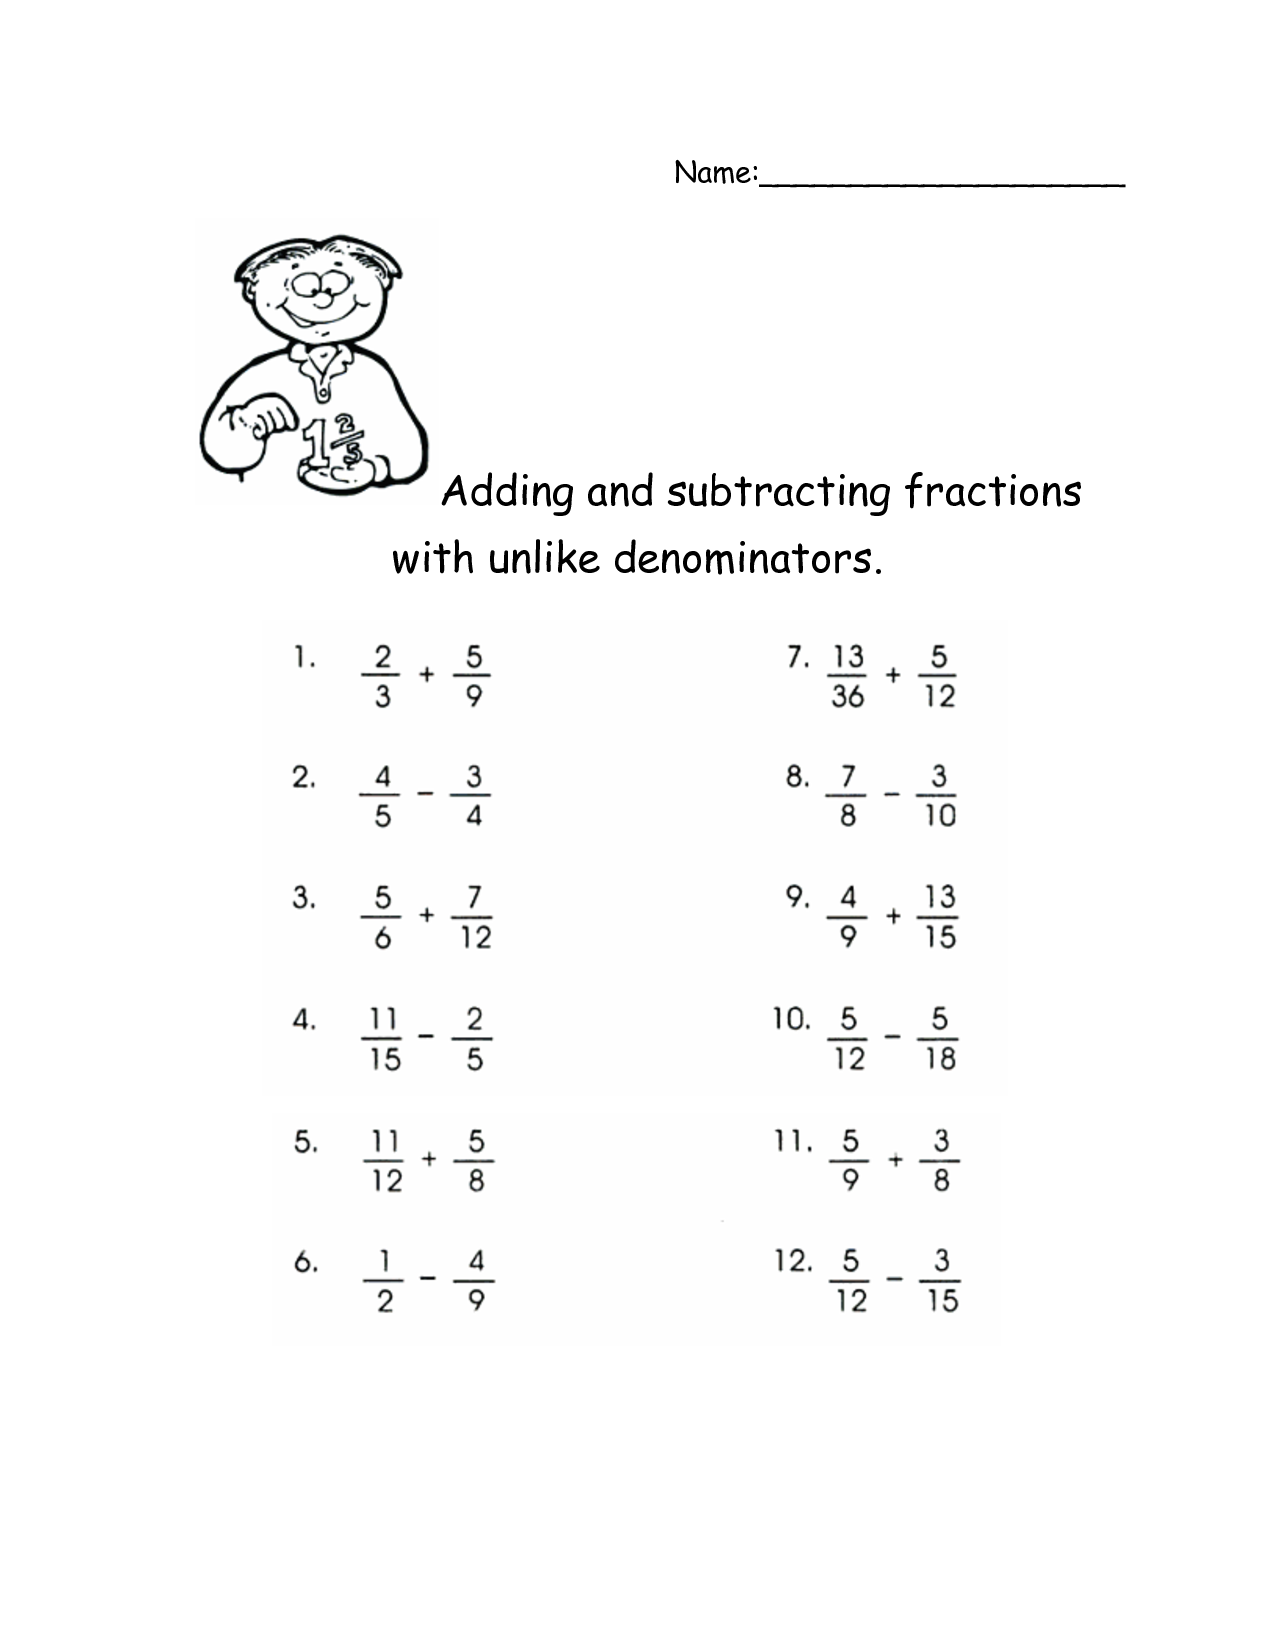 Worksheet 612792 Subtracting Fraction Worksheets Fractions – Subtracting Fractions with Like Denominators Worksheet